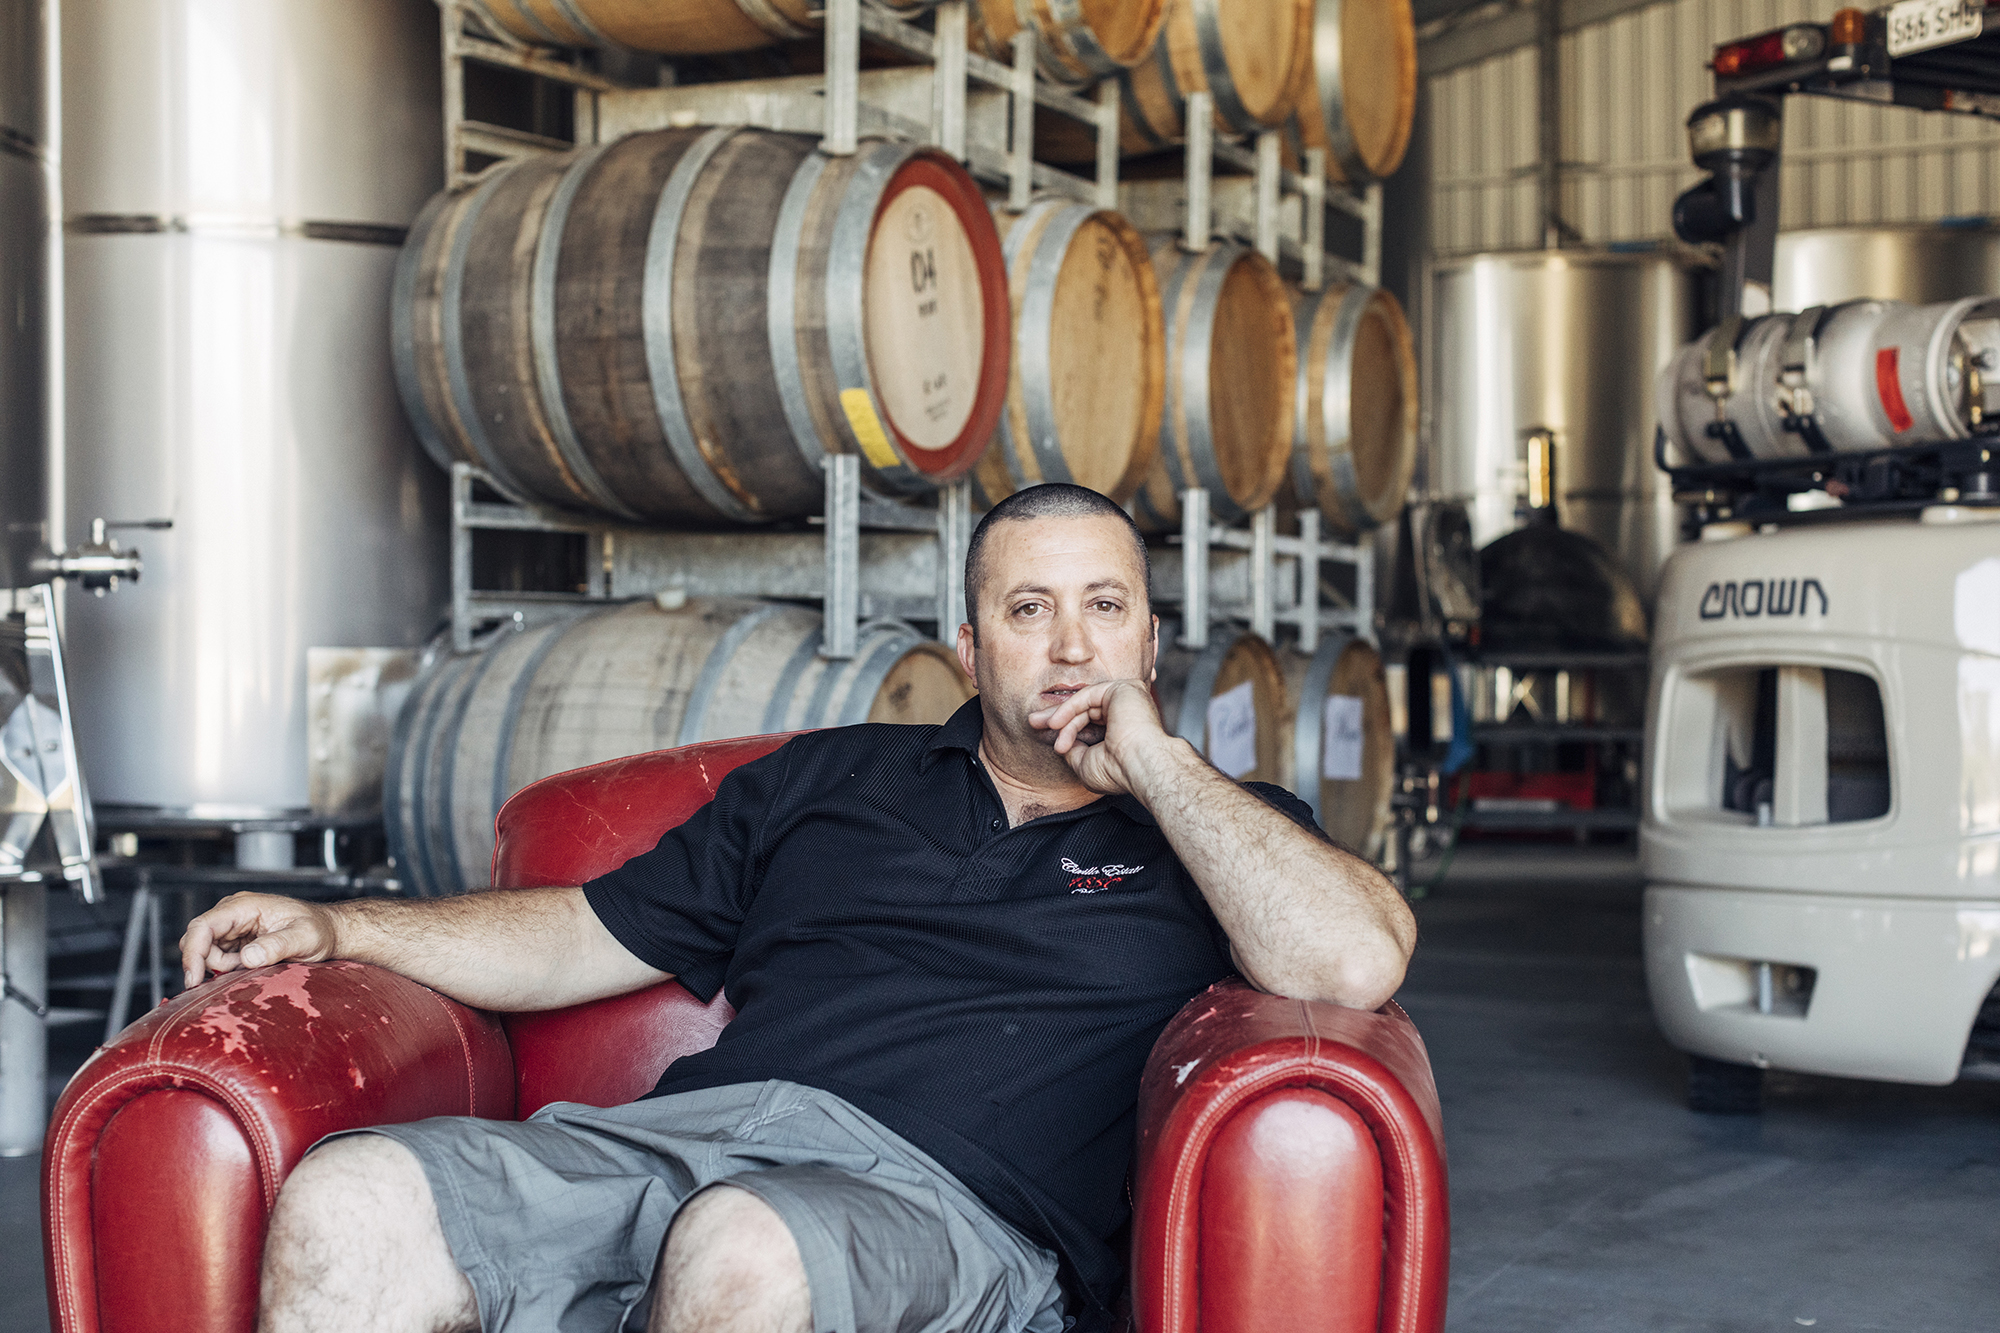 Marco Cirillo of Cirillo Estates Wines sitting in a red chair in his winery